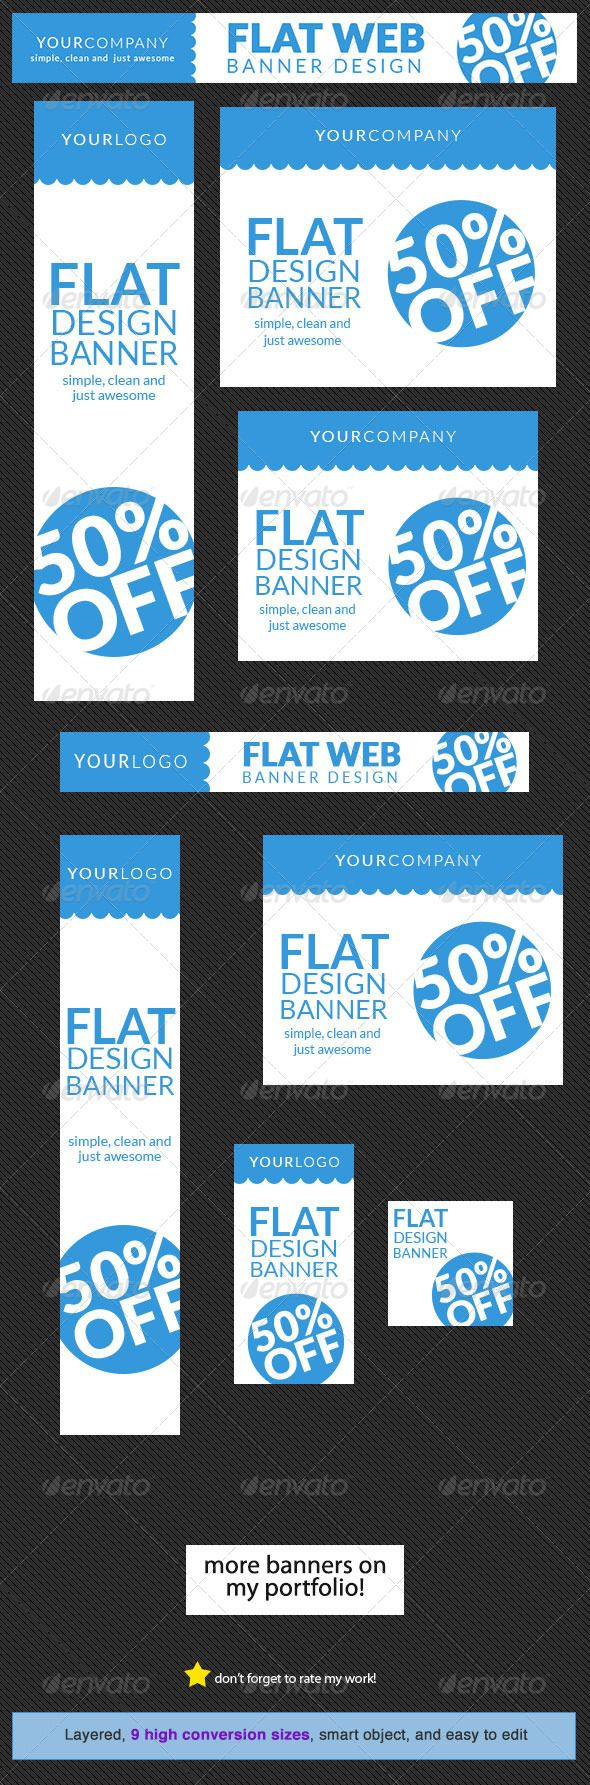 Flat Web Banner Design Template  #GraphicRiver        Clean Flat Web Banner Design Template Flat and modern set of web banner design templates for any campaign. Web Banner sizes These are the banner sizes that will give you high rate of conversion     leaderboard (728×90)   banner (468×60)   button (125×125)   wide skyscraper (160×600)   skyscraper (120×600)   vertical banner (120×240)   large rectangle (336×280)  Ad Sizes for Mobile Ads   square (250×250)  medium rectangle (300×250)…